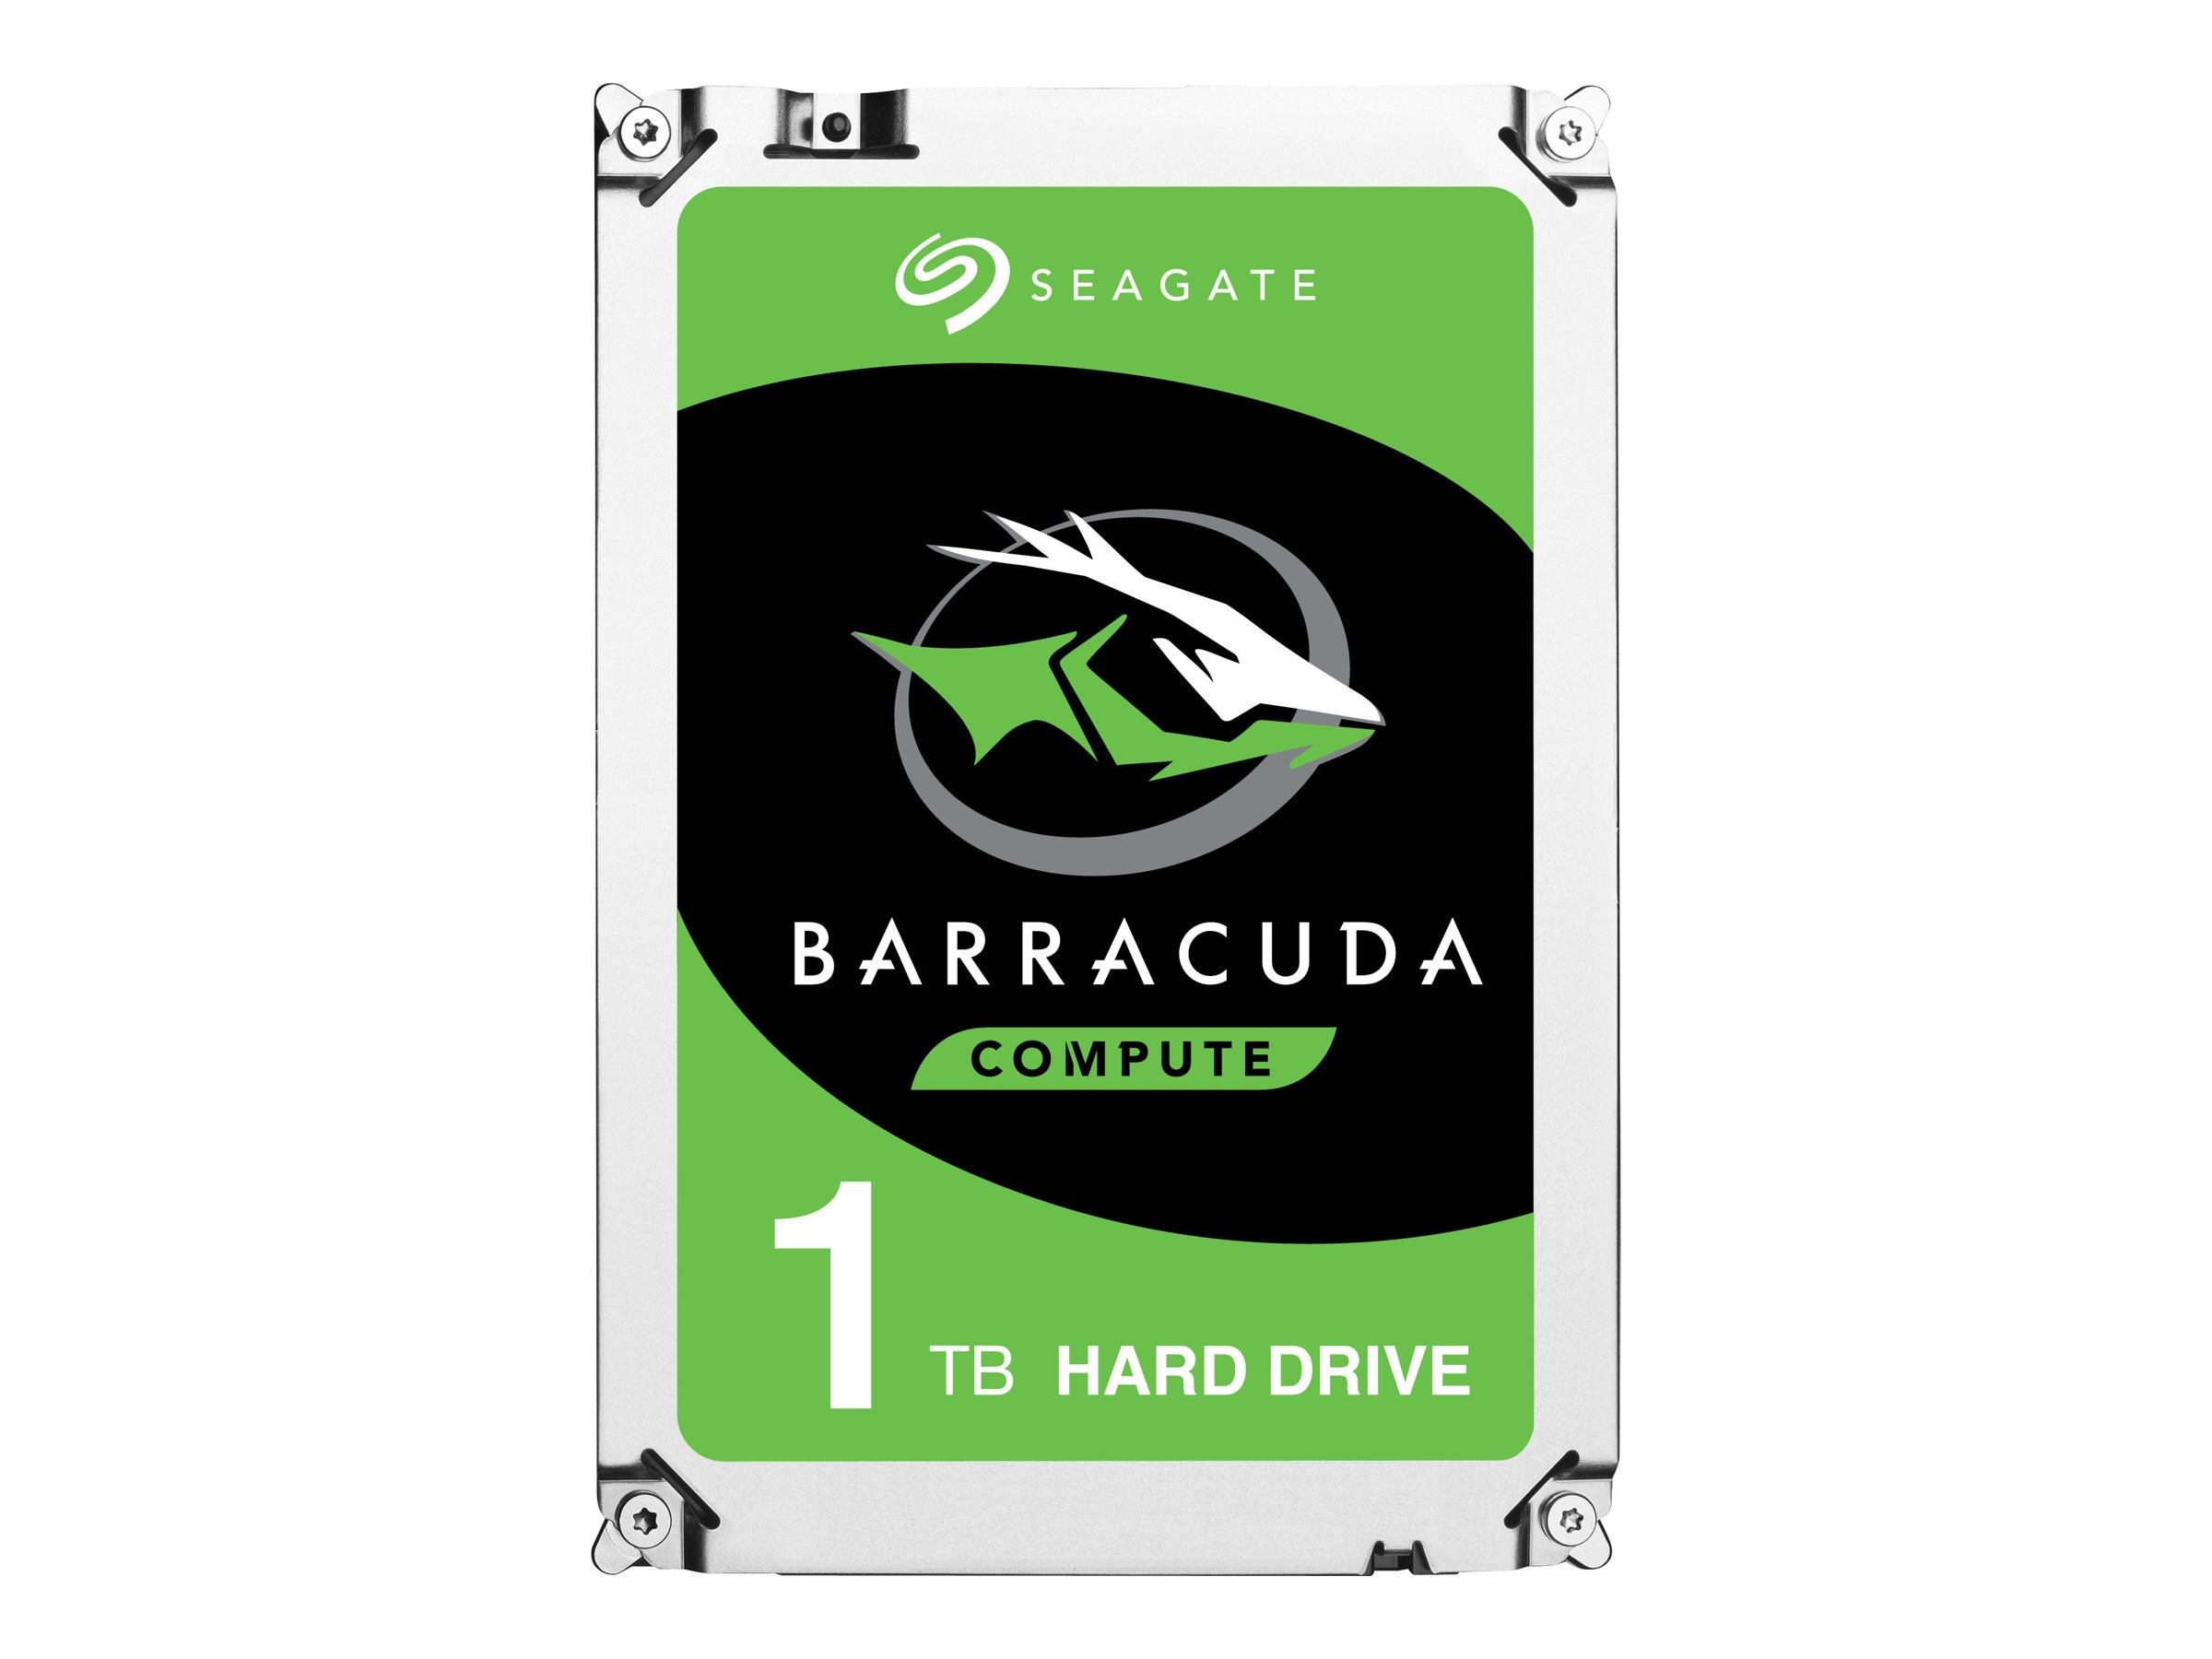 Seagate 1TB BarraCuda SATA 6Gb s 2.5 7mm Internal Hard Drive